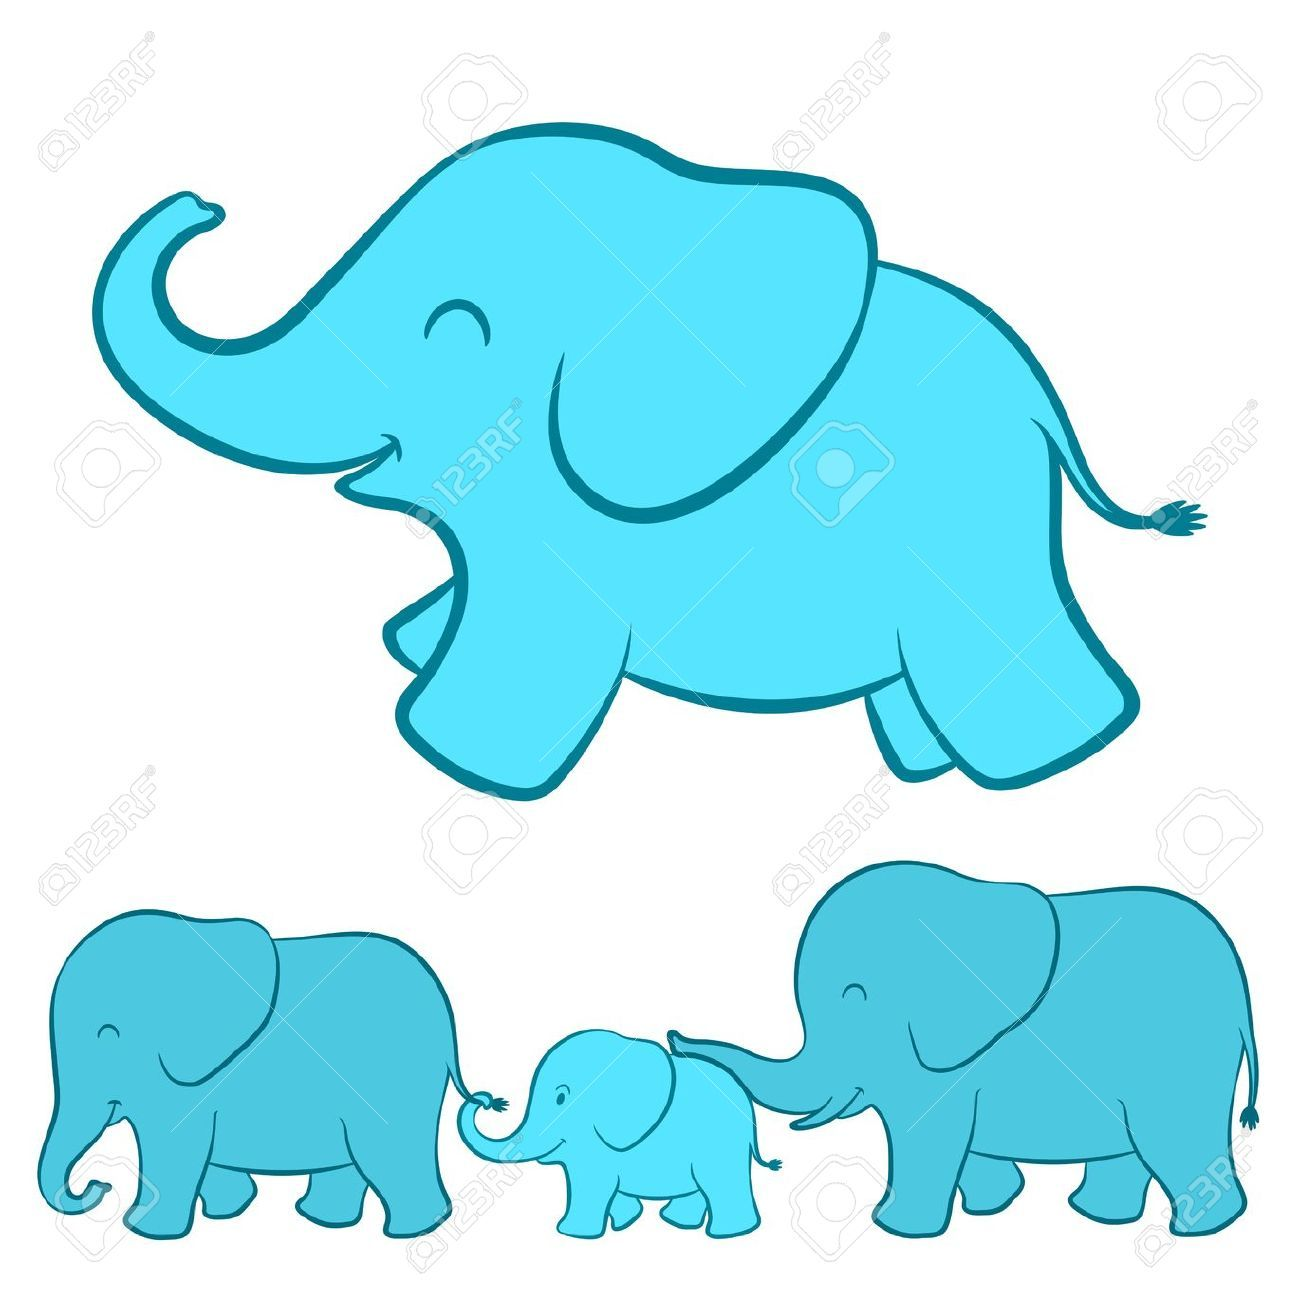 Elephant nursery wall art print mom baby dad by rizzleandrugee - Adorable Cartoon Illustration Of A Happy Playful Baby Blue Ellie With A Complete View Of The Whole Elephant Family Walking In A Line Below Touching Each